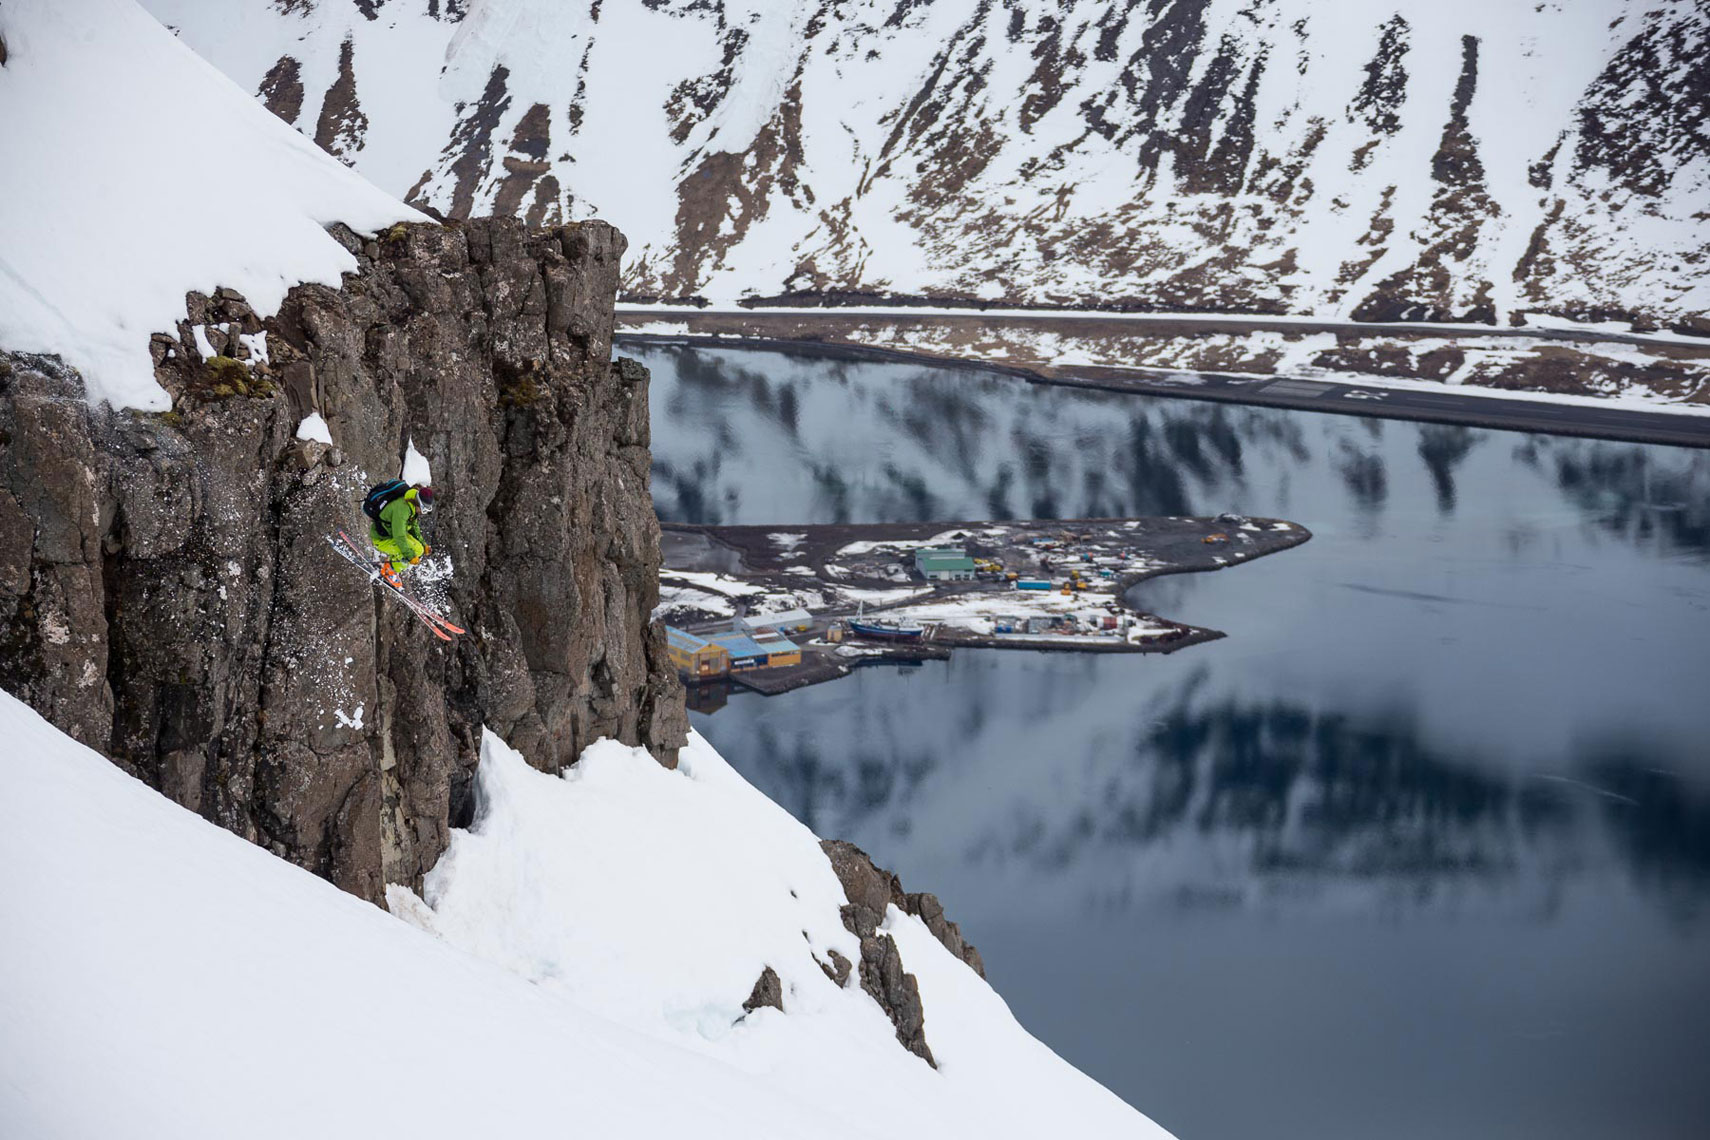 Marcus Caston Skiing Iceland Photo: Gabe Rogel